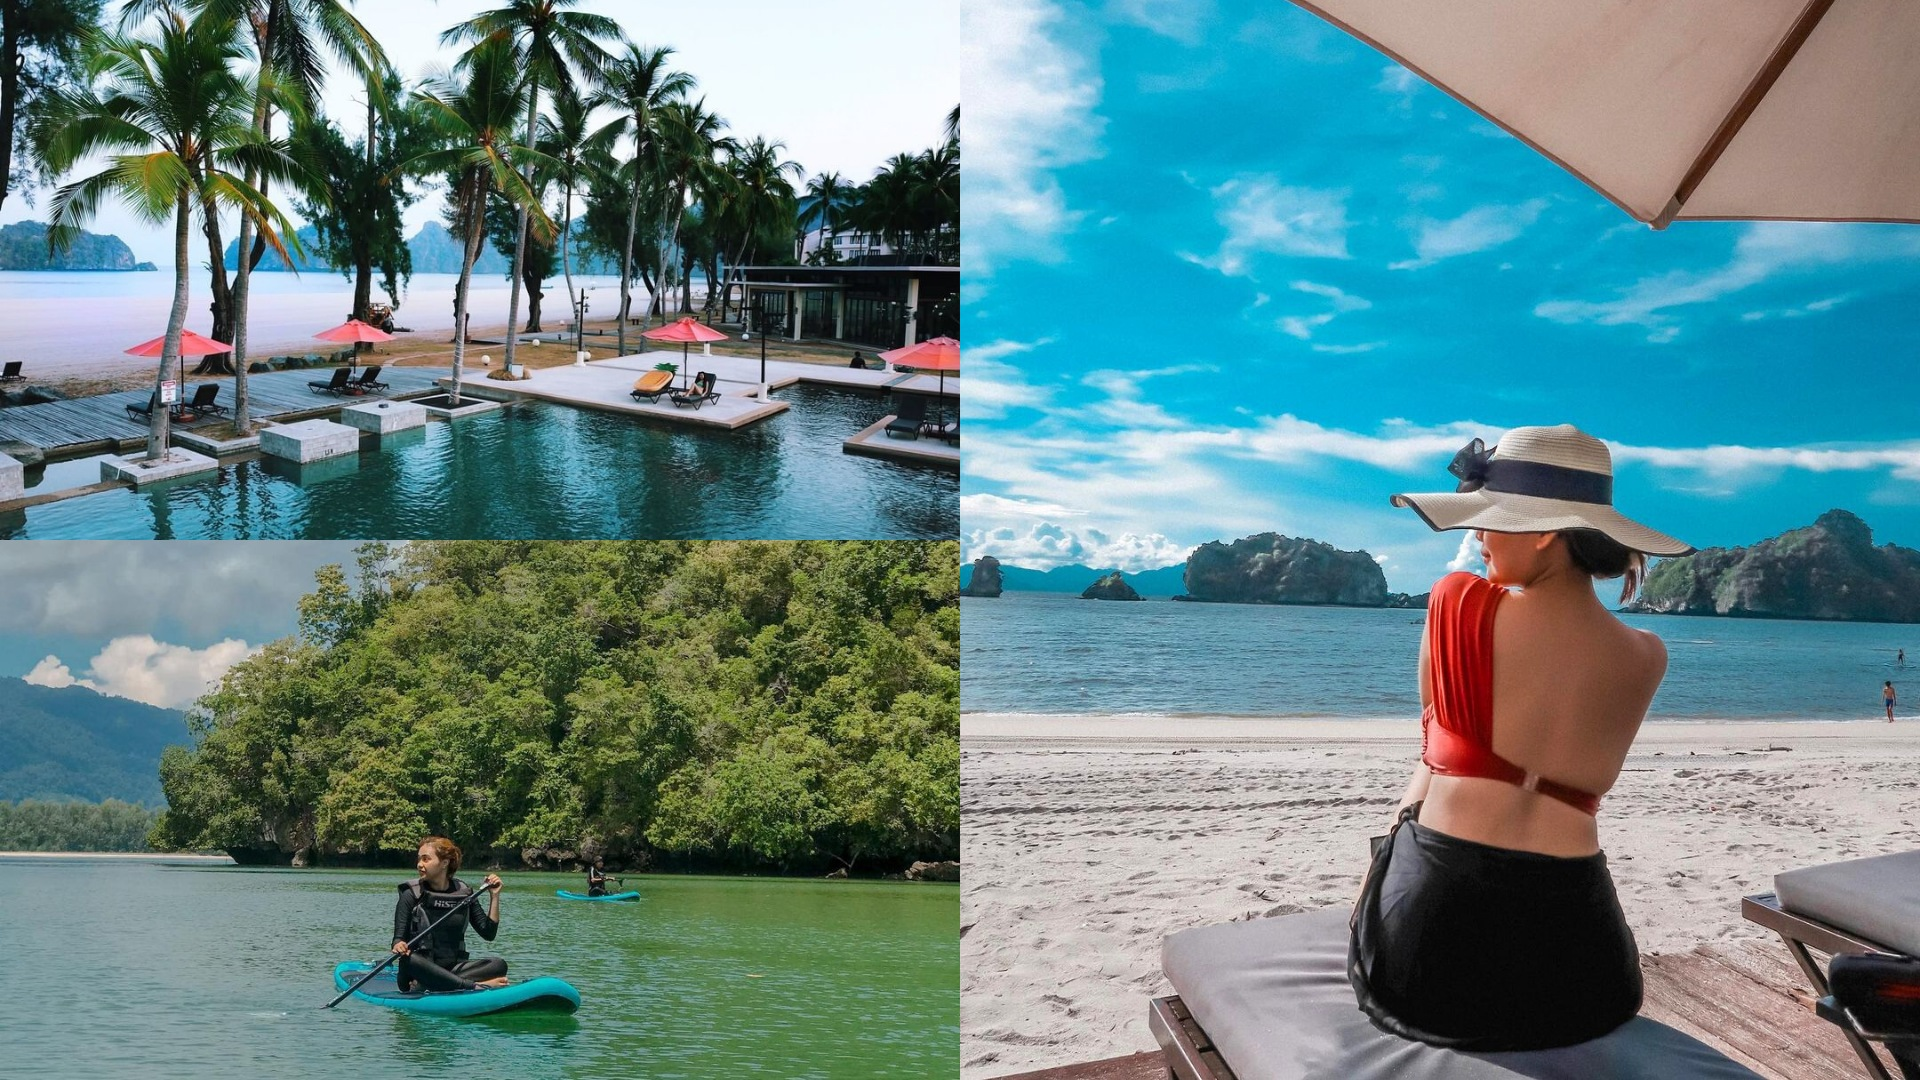 Tanjung Rhu Resort: This 5-Star Hotel In Langkawi Is A Secluded Beachfront  Sanctuary - Klook Travel Blog